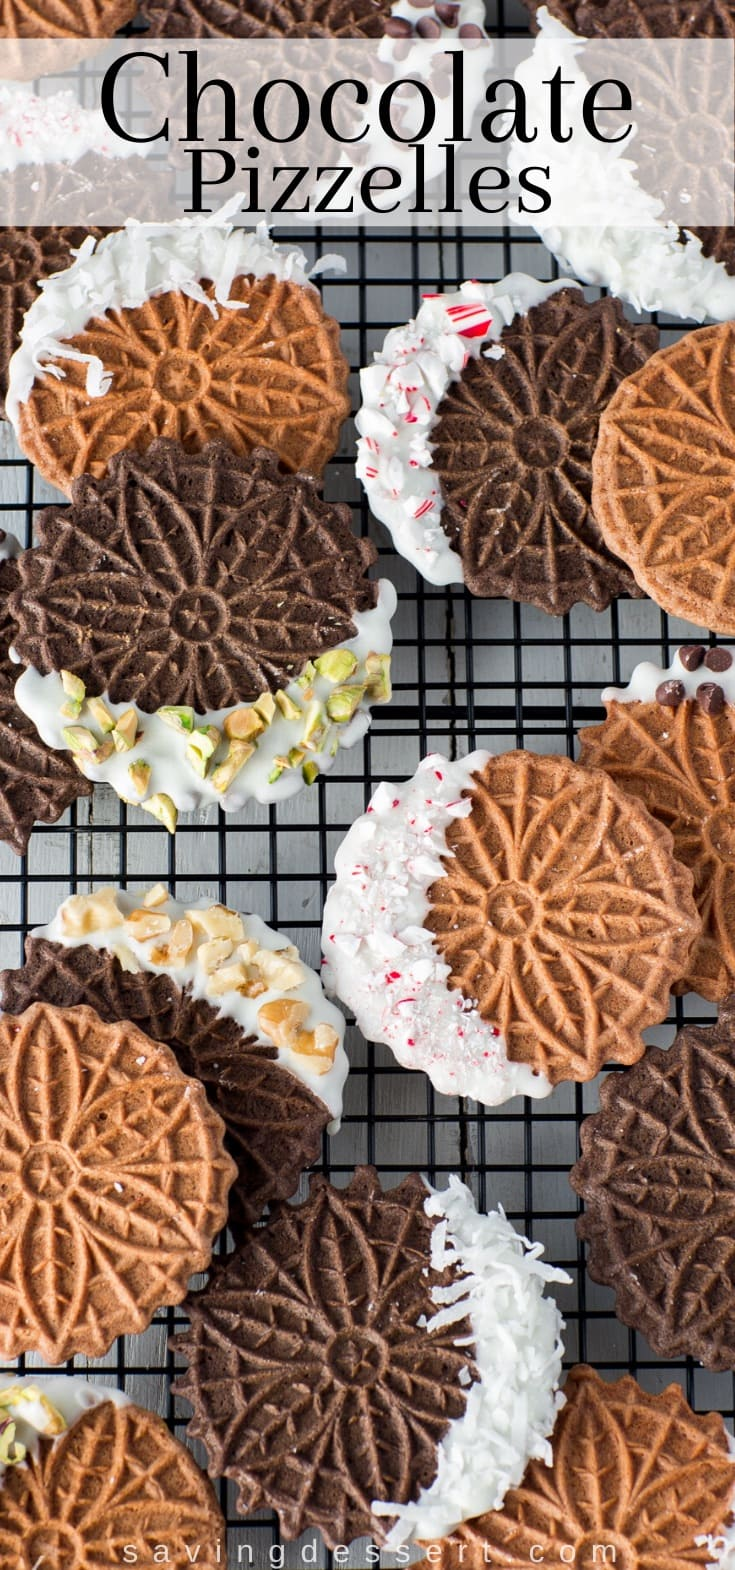 A cooling rack covered in chocolate pizzelle cookies dipped in white chocolate